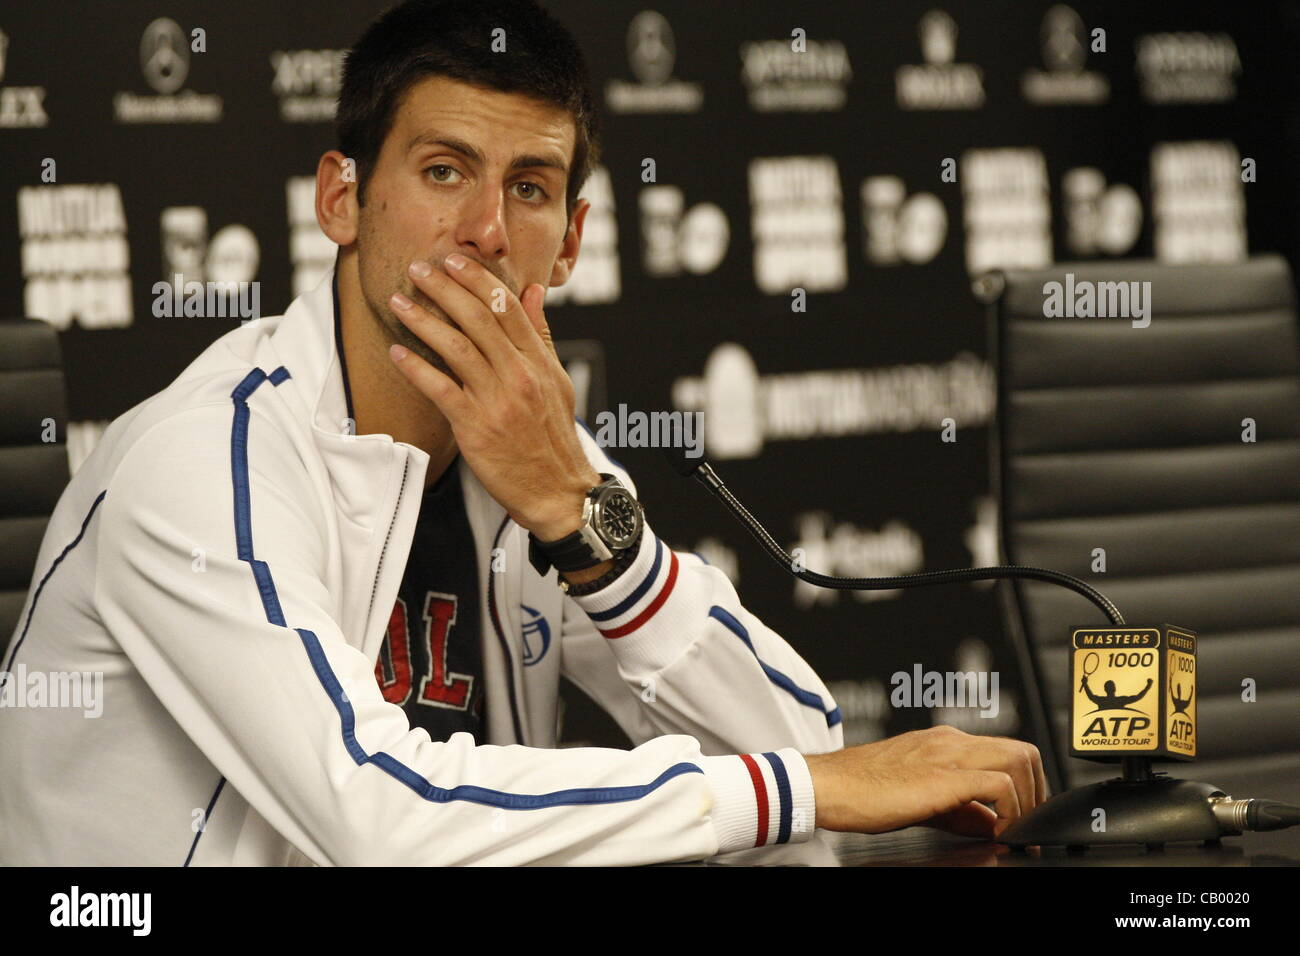 Novak Djokovic threaten to withdraw from next year's Madrid Open - Stock Image